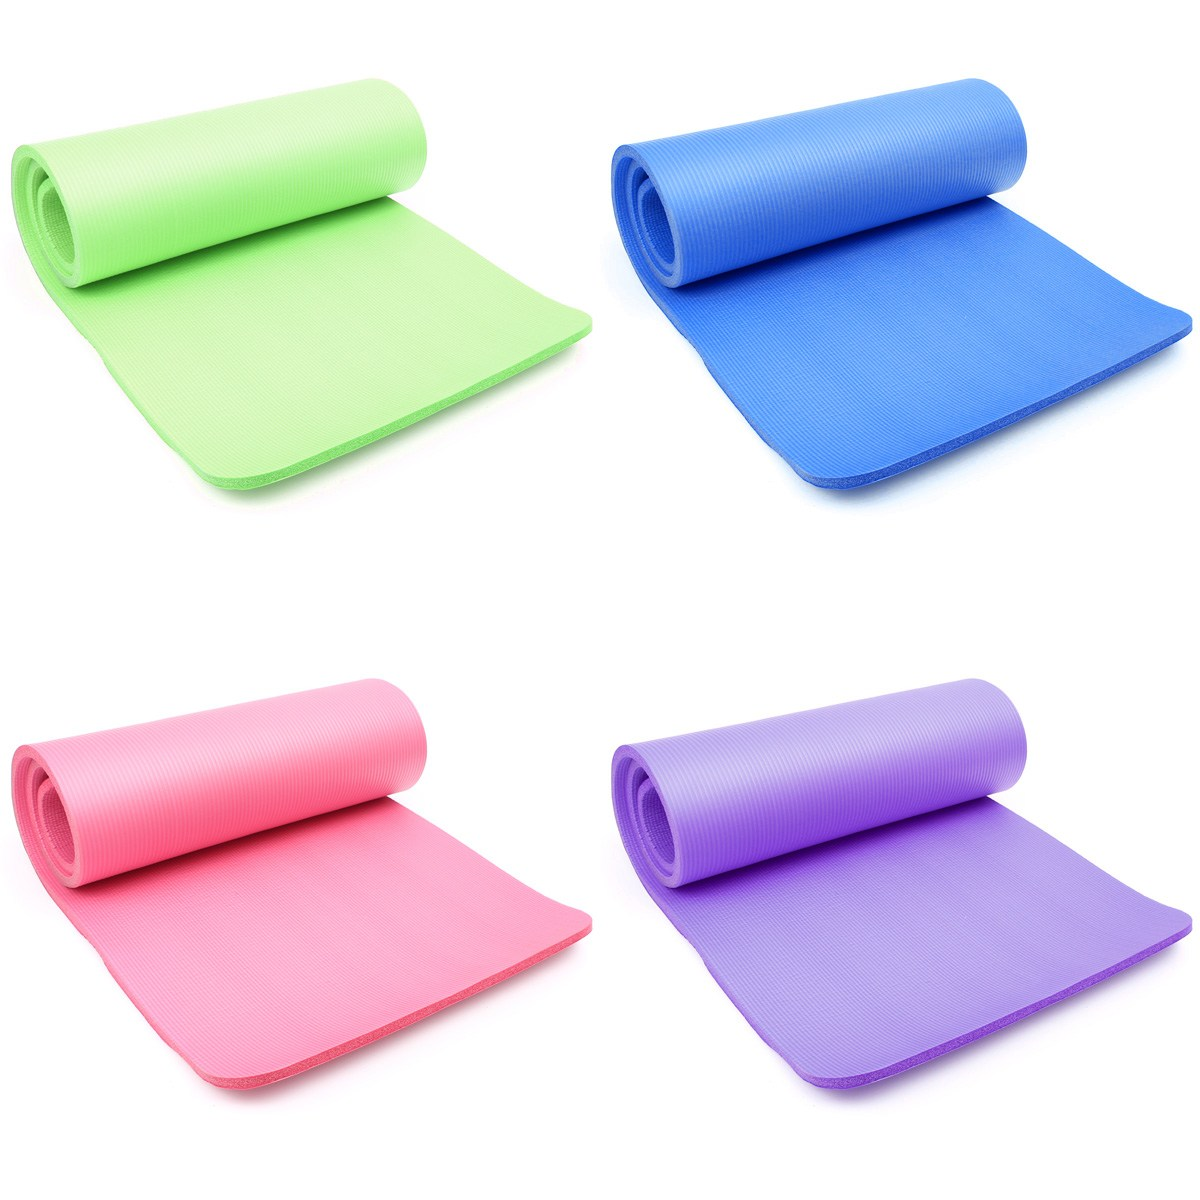 15mm Thick NBR Foam Yoga Mat Soft Yoga Pads Sports Training Exercise non-slip Gym Mat 183 X 61cm for Fitness Body Building yoga pilates mat pu 5mm for beginners and seniors widened workout yoga pilates gym exercise fitness gym mat